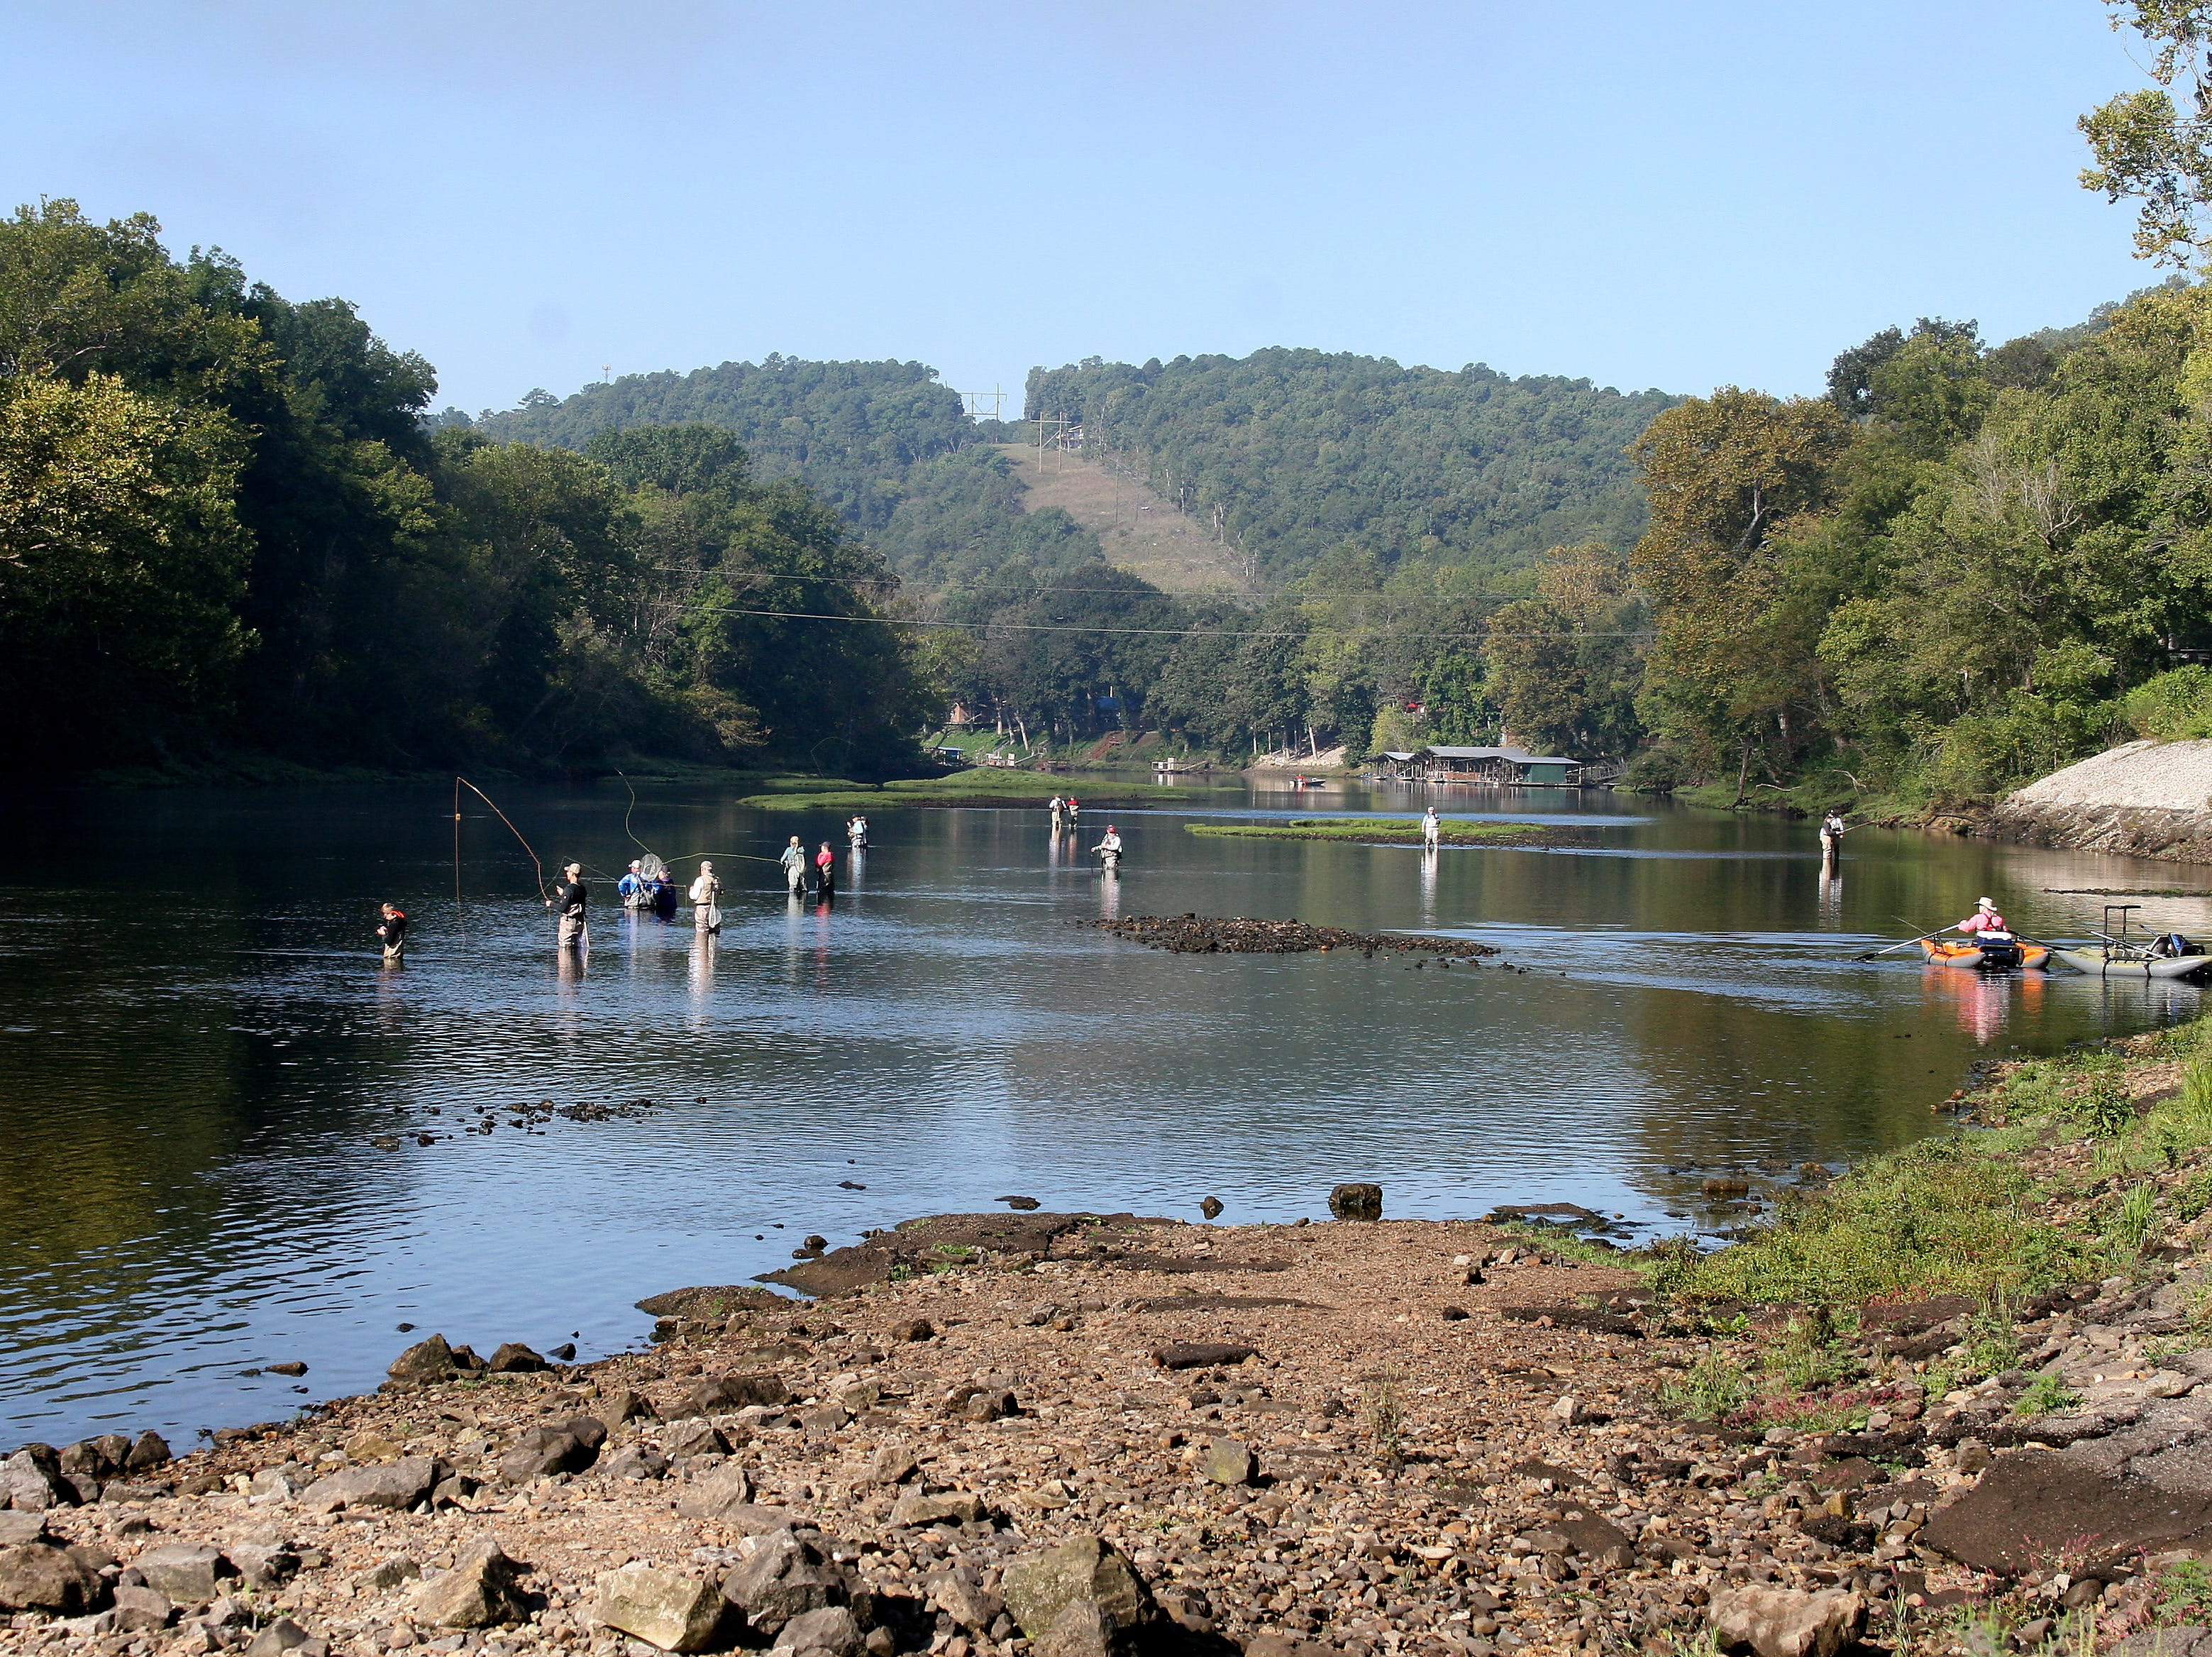 Once the early morning fog burned off, Sunday was a picture-perfect day for fly fishing.